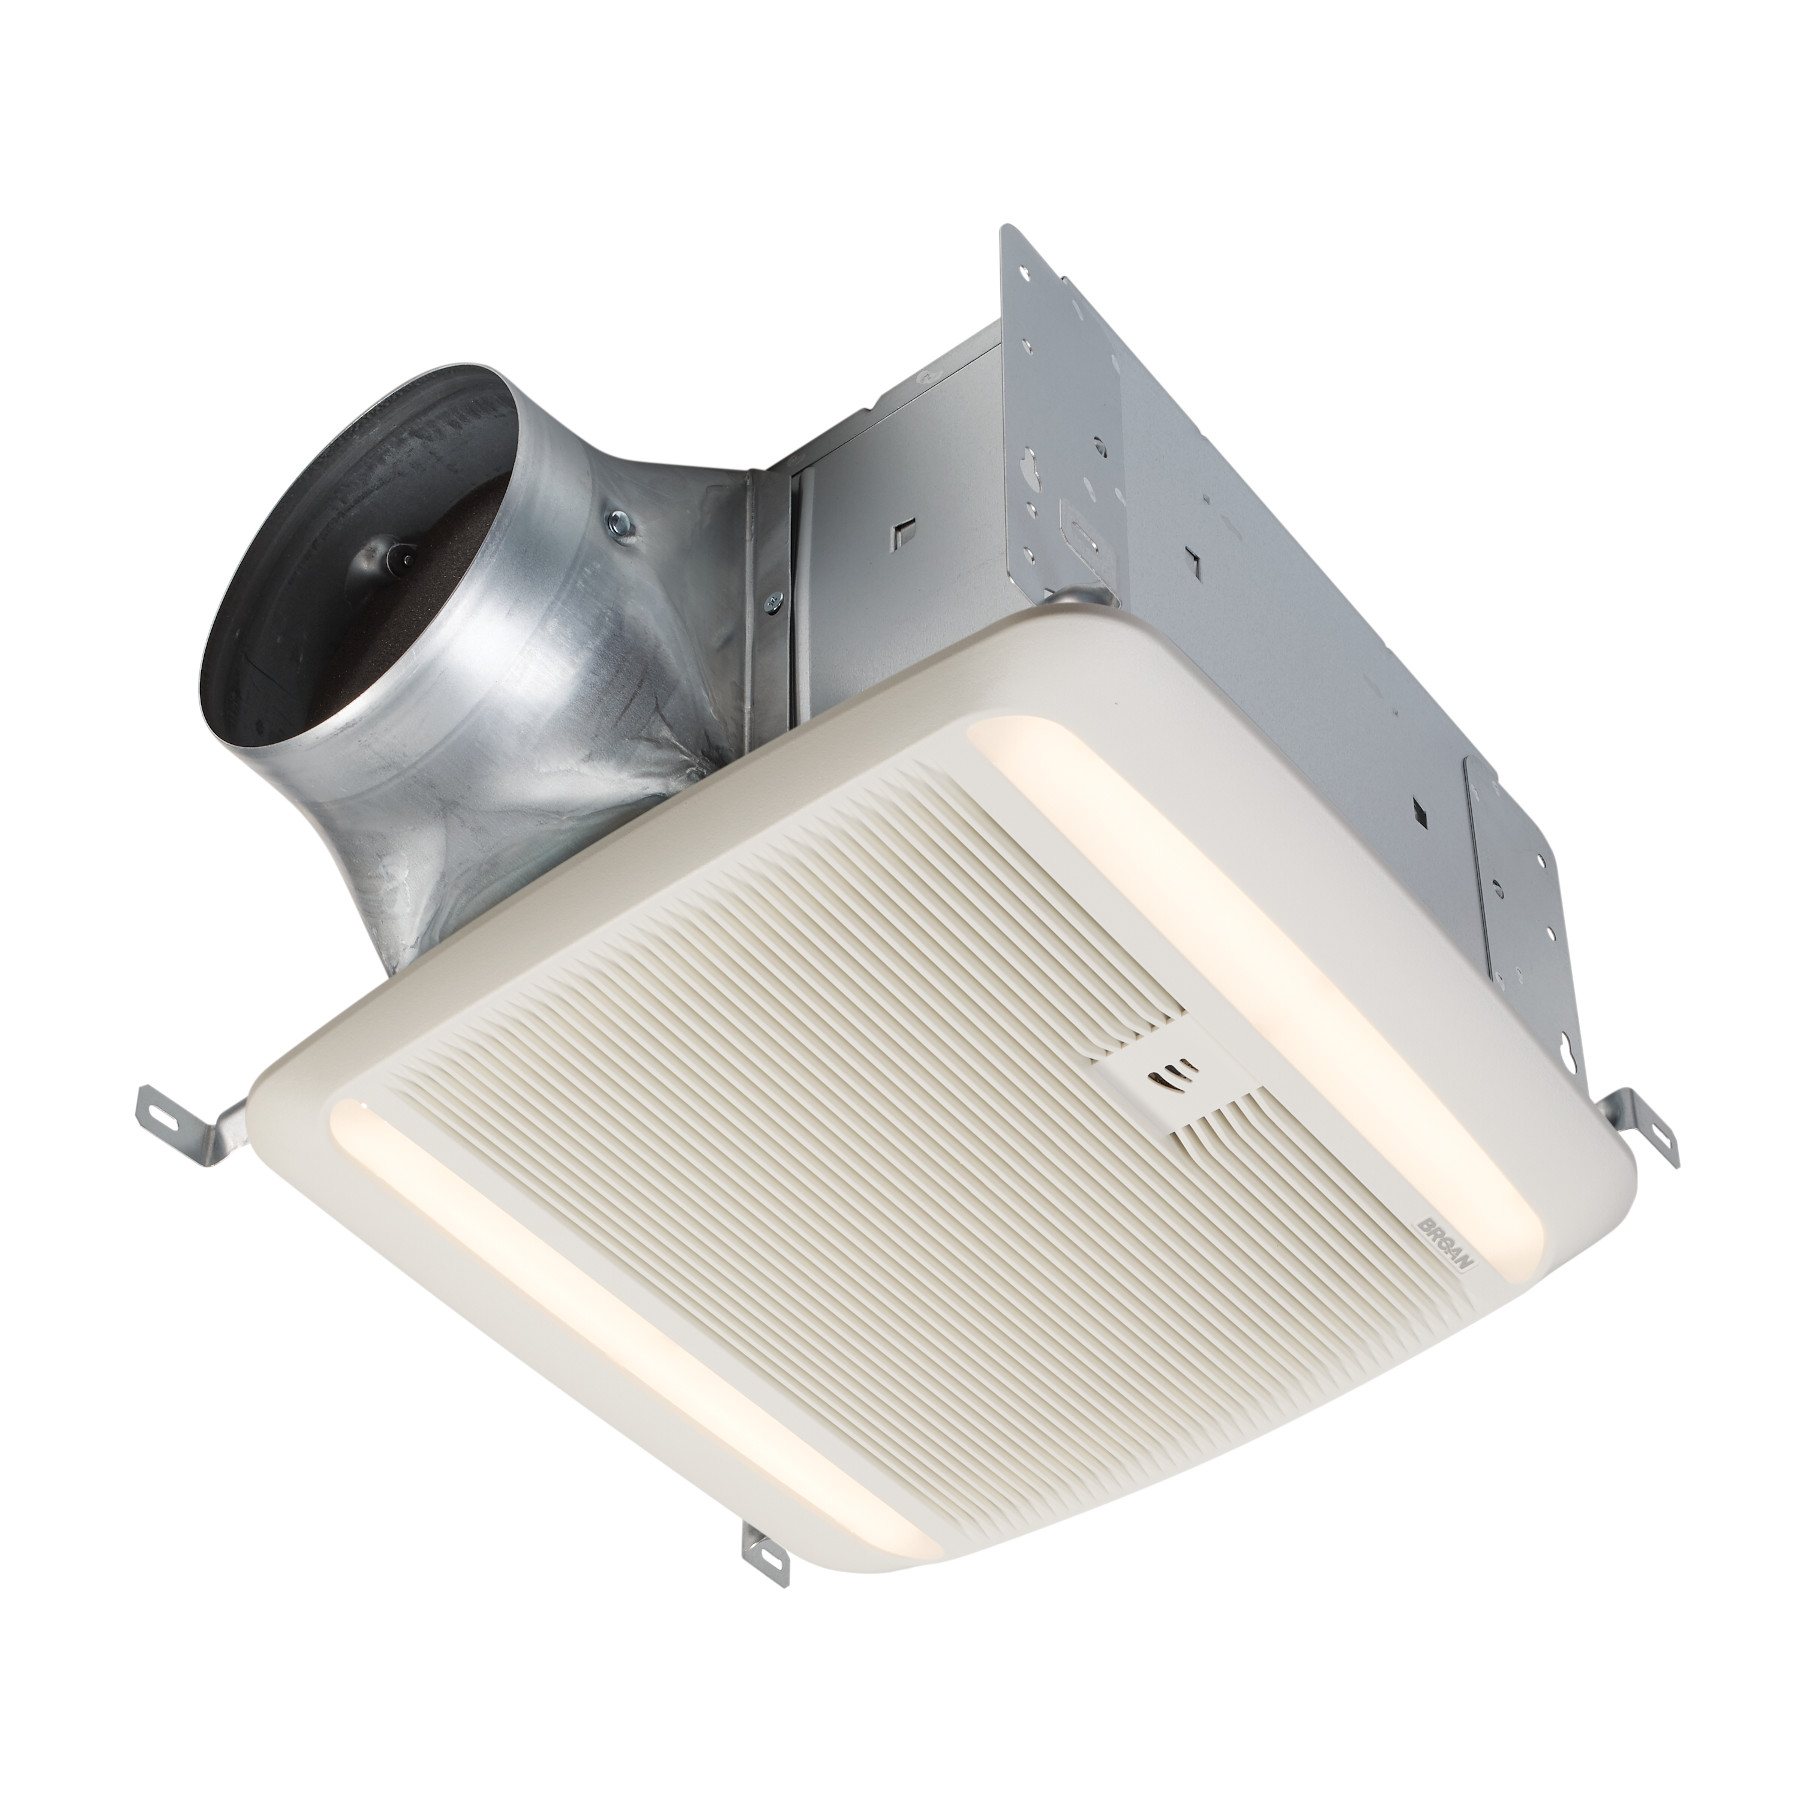 Broan® Humidity Sensing Exhaust Ventilation Fan w/ LED Light, 110-130-150 Selectable CFM, ENERGY STA